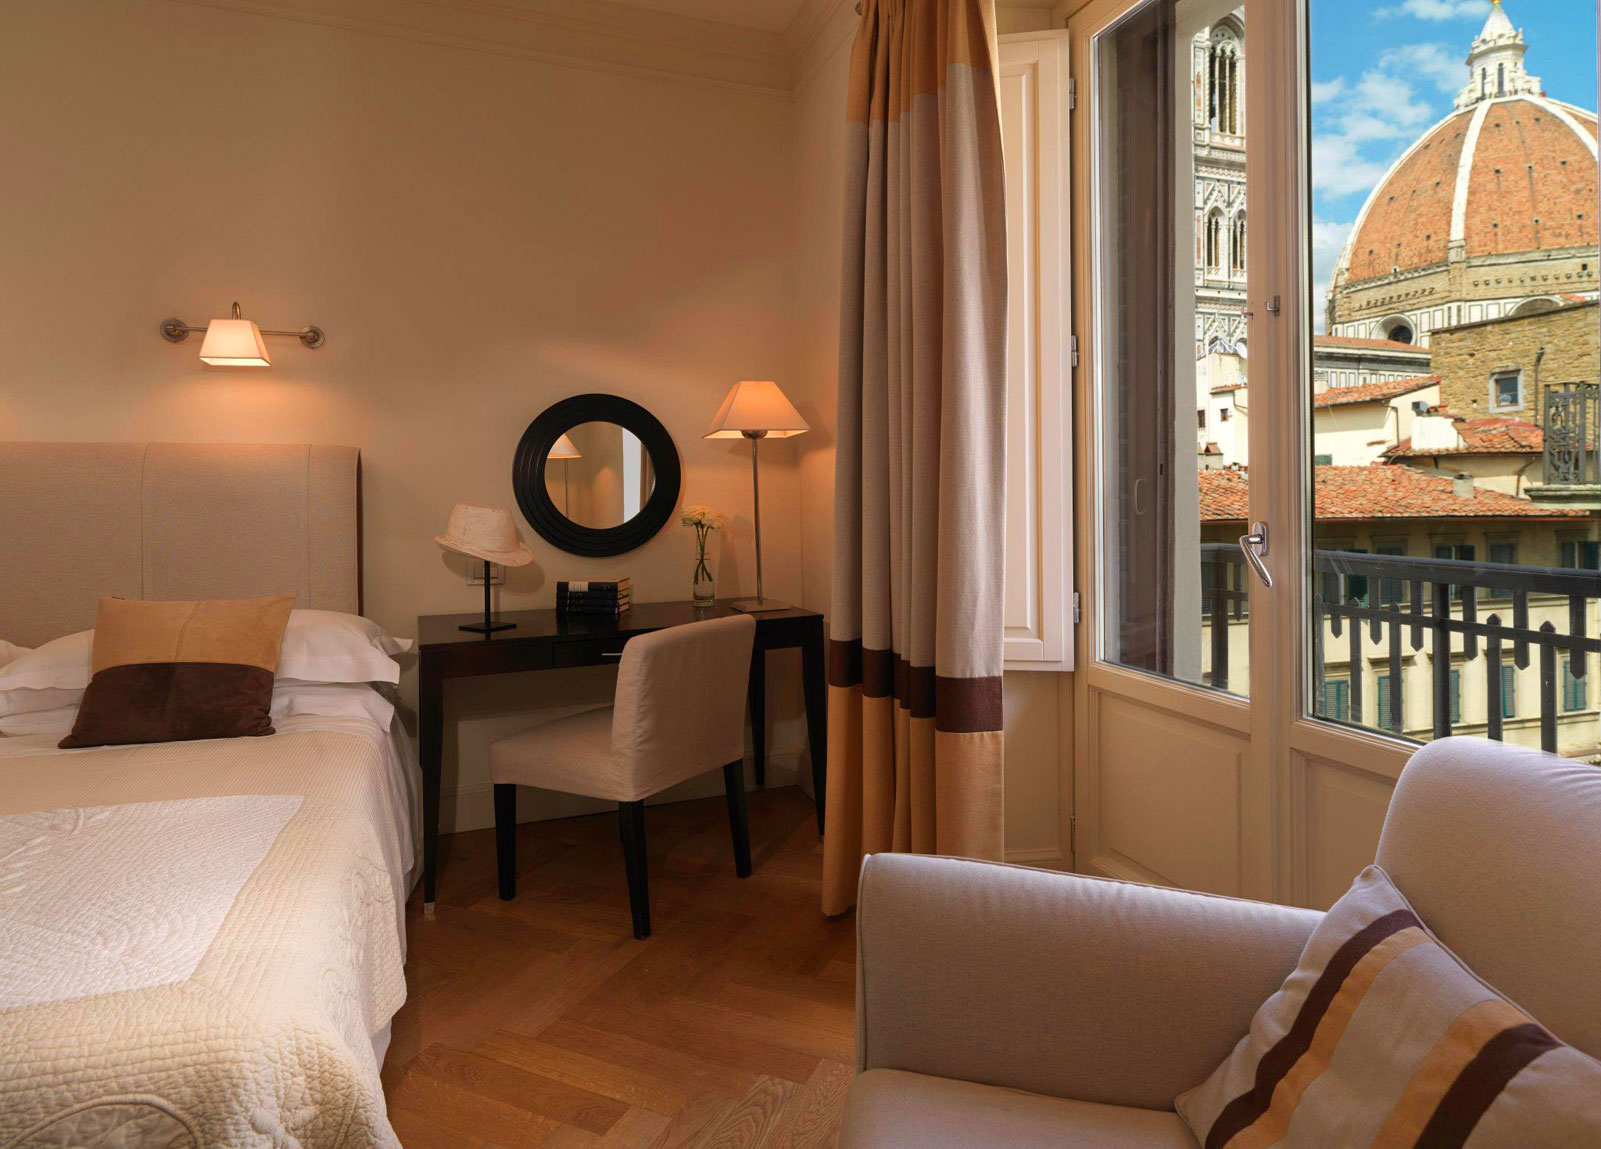 Florence Hotels - Hotel Savoy